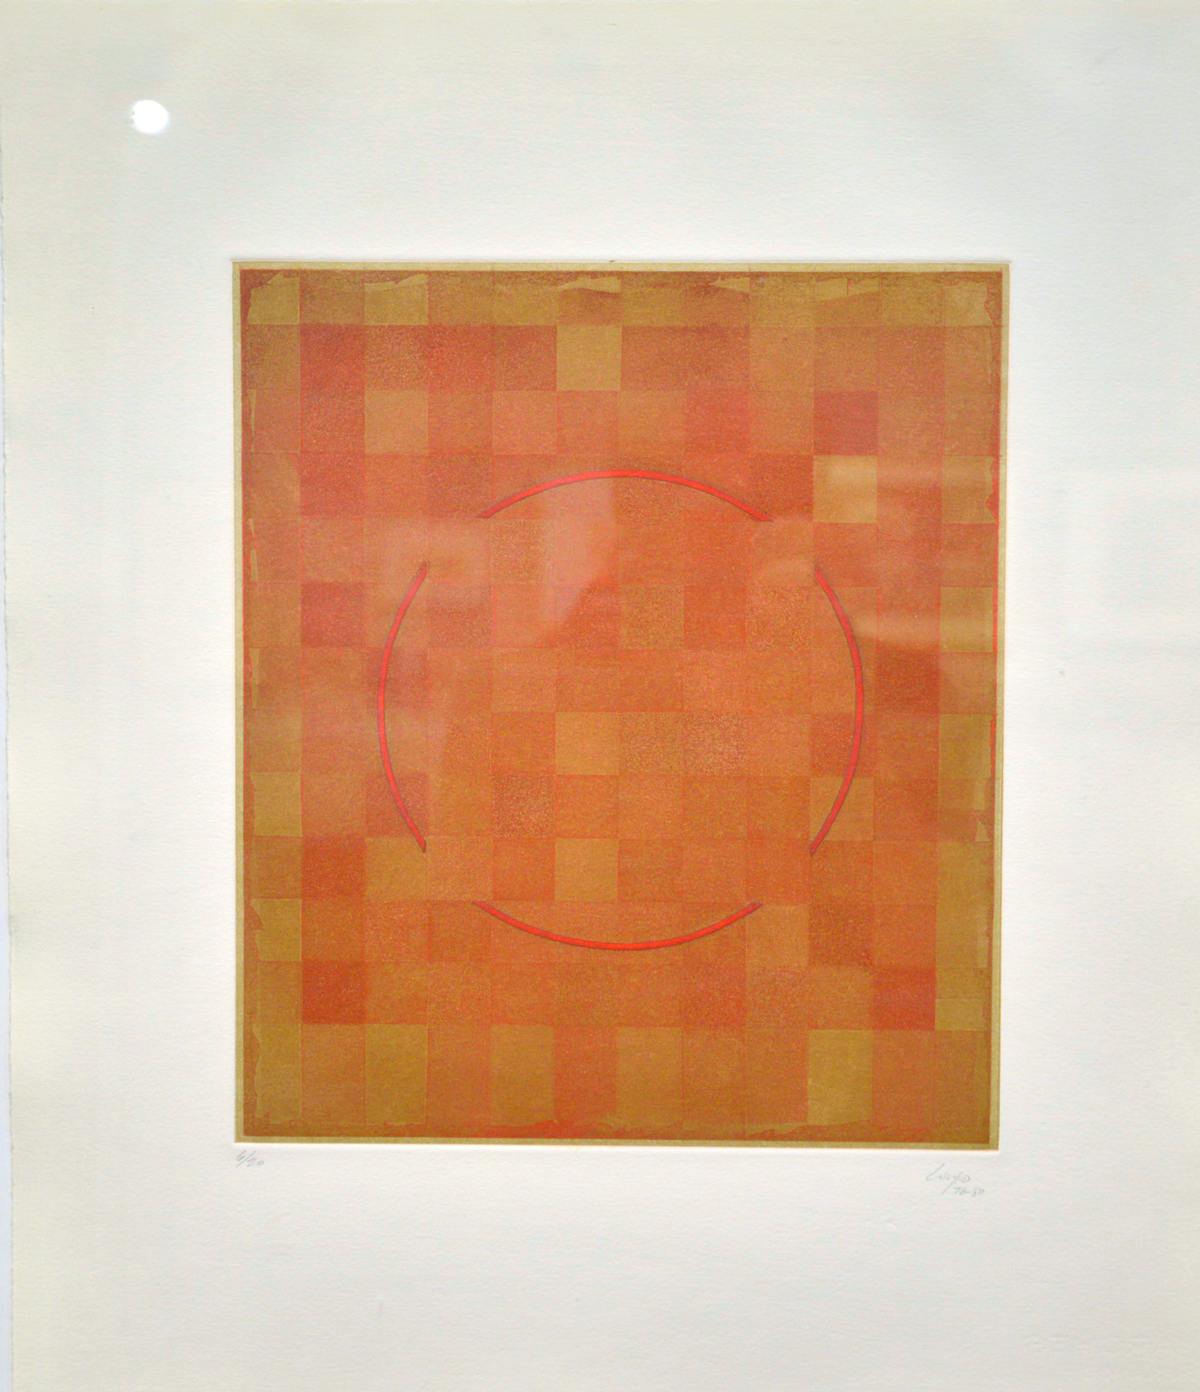 Longo, Vincent - Untitled (With broken red floating circle)